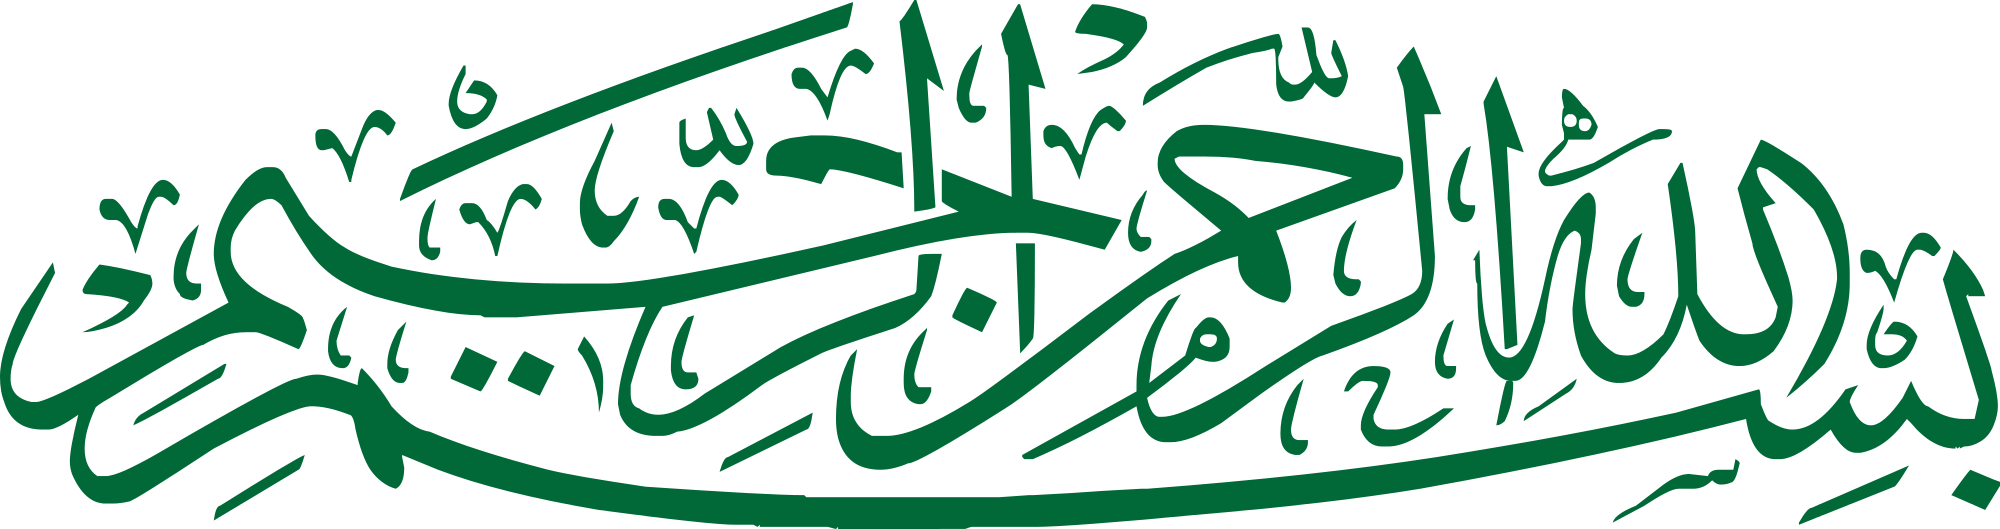 Bismillah vector background. Png transparent free images